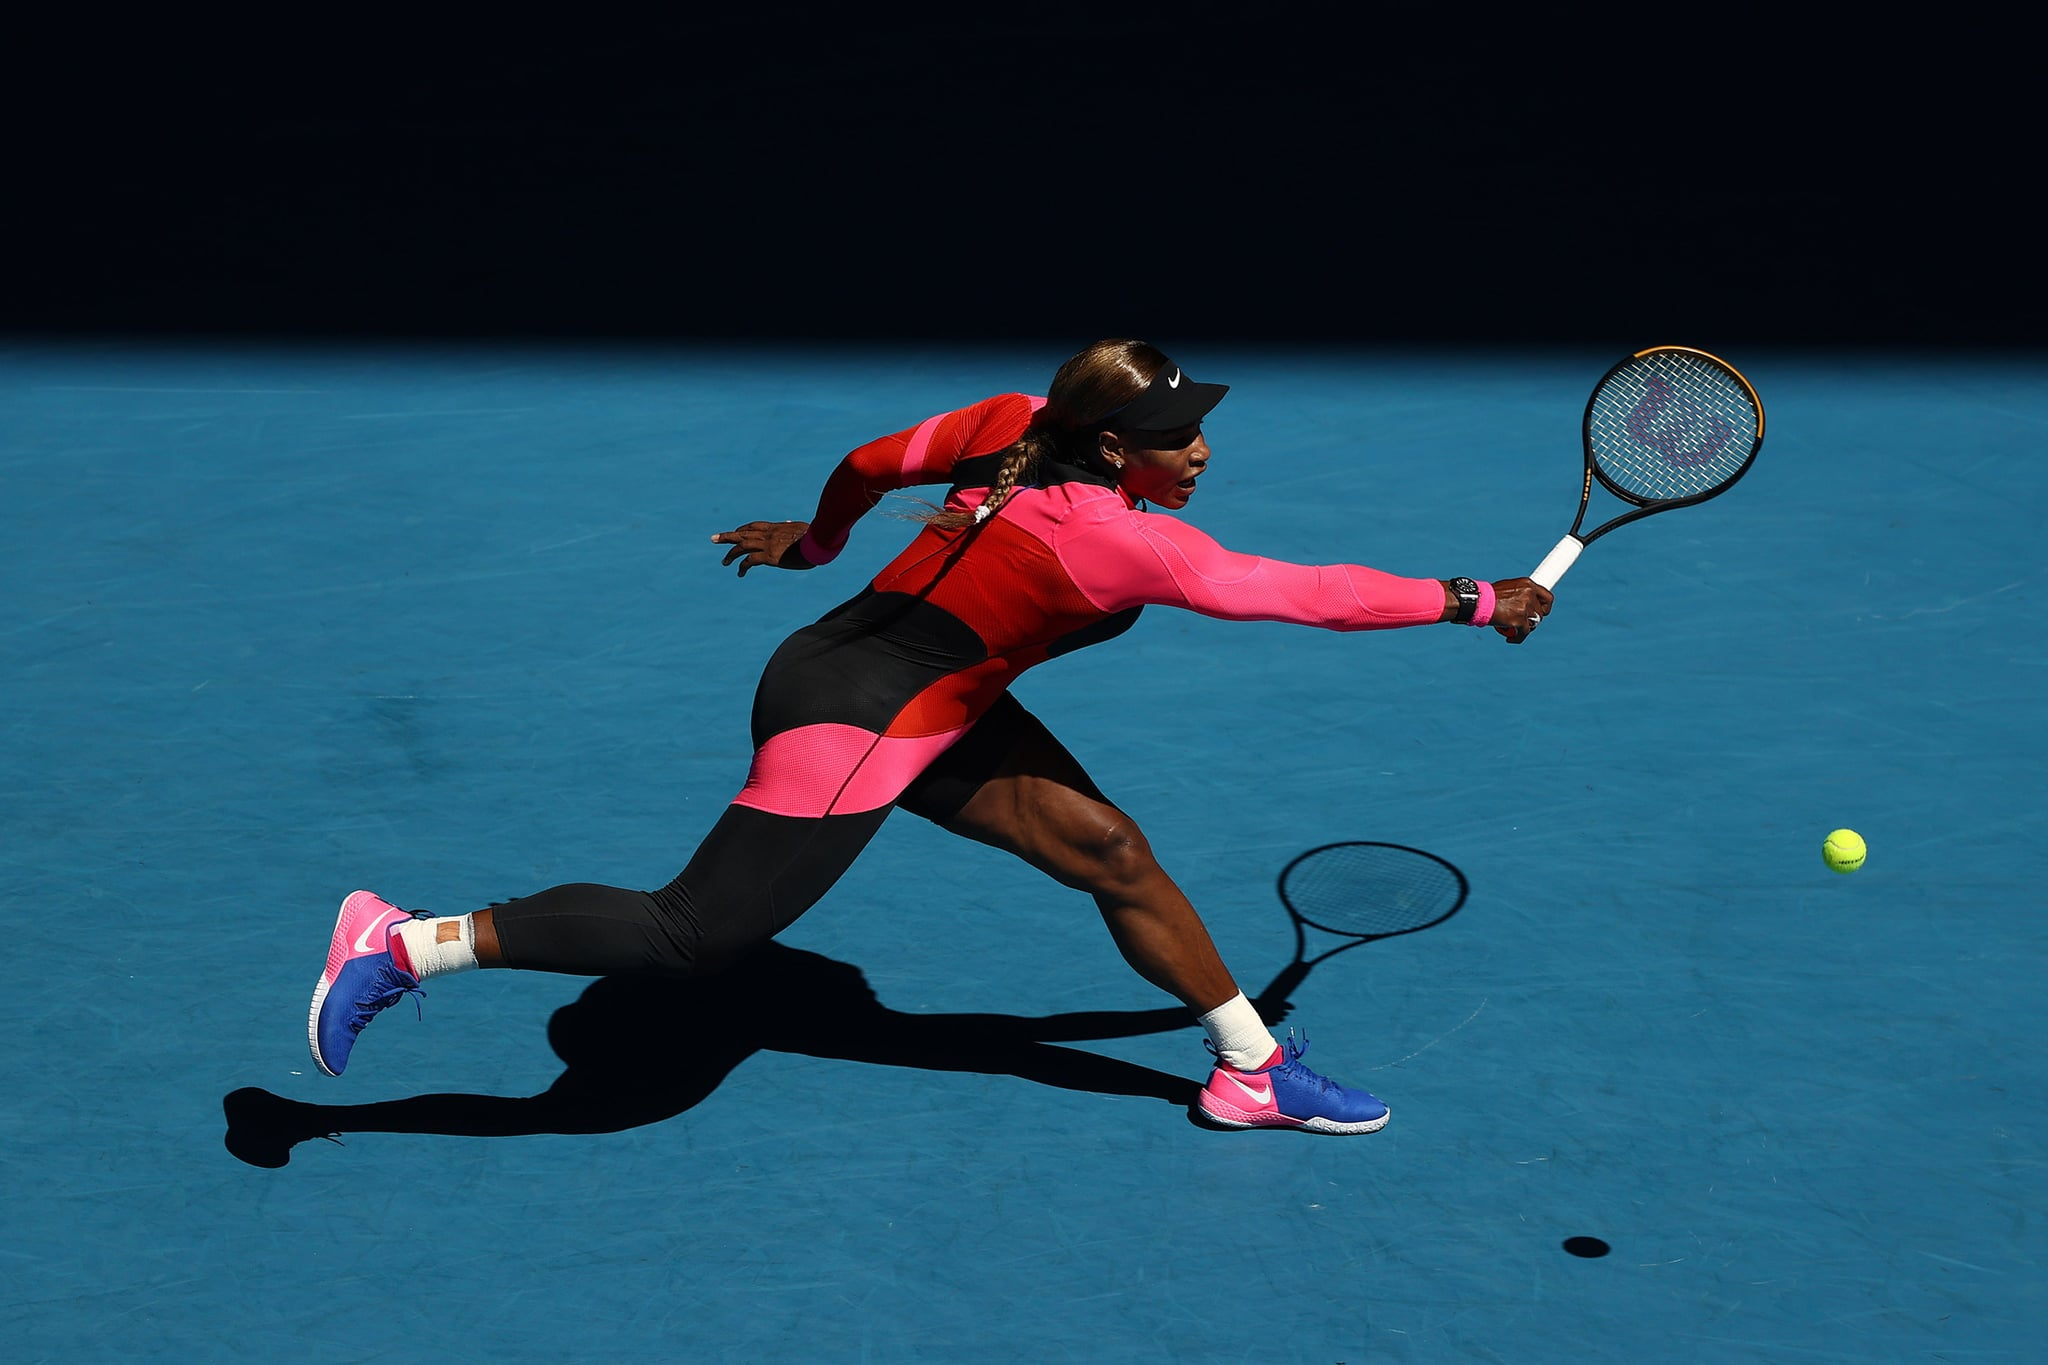 serena-williamss-daughter-olympia-in-australian-open-outfit